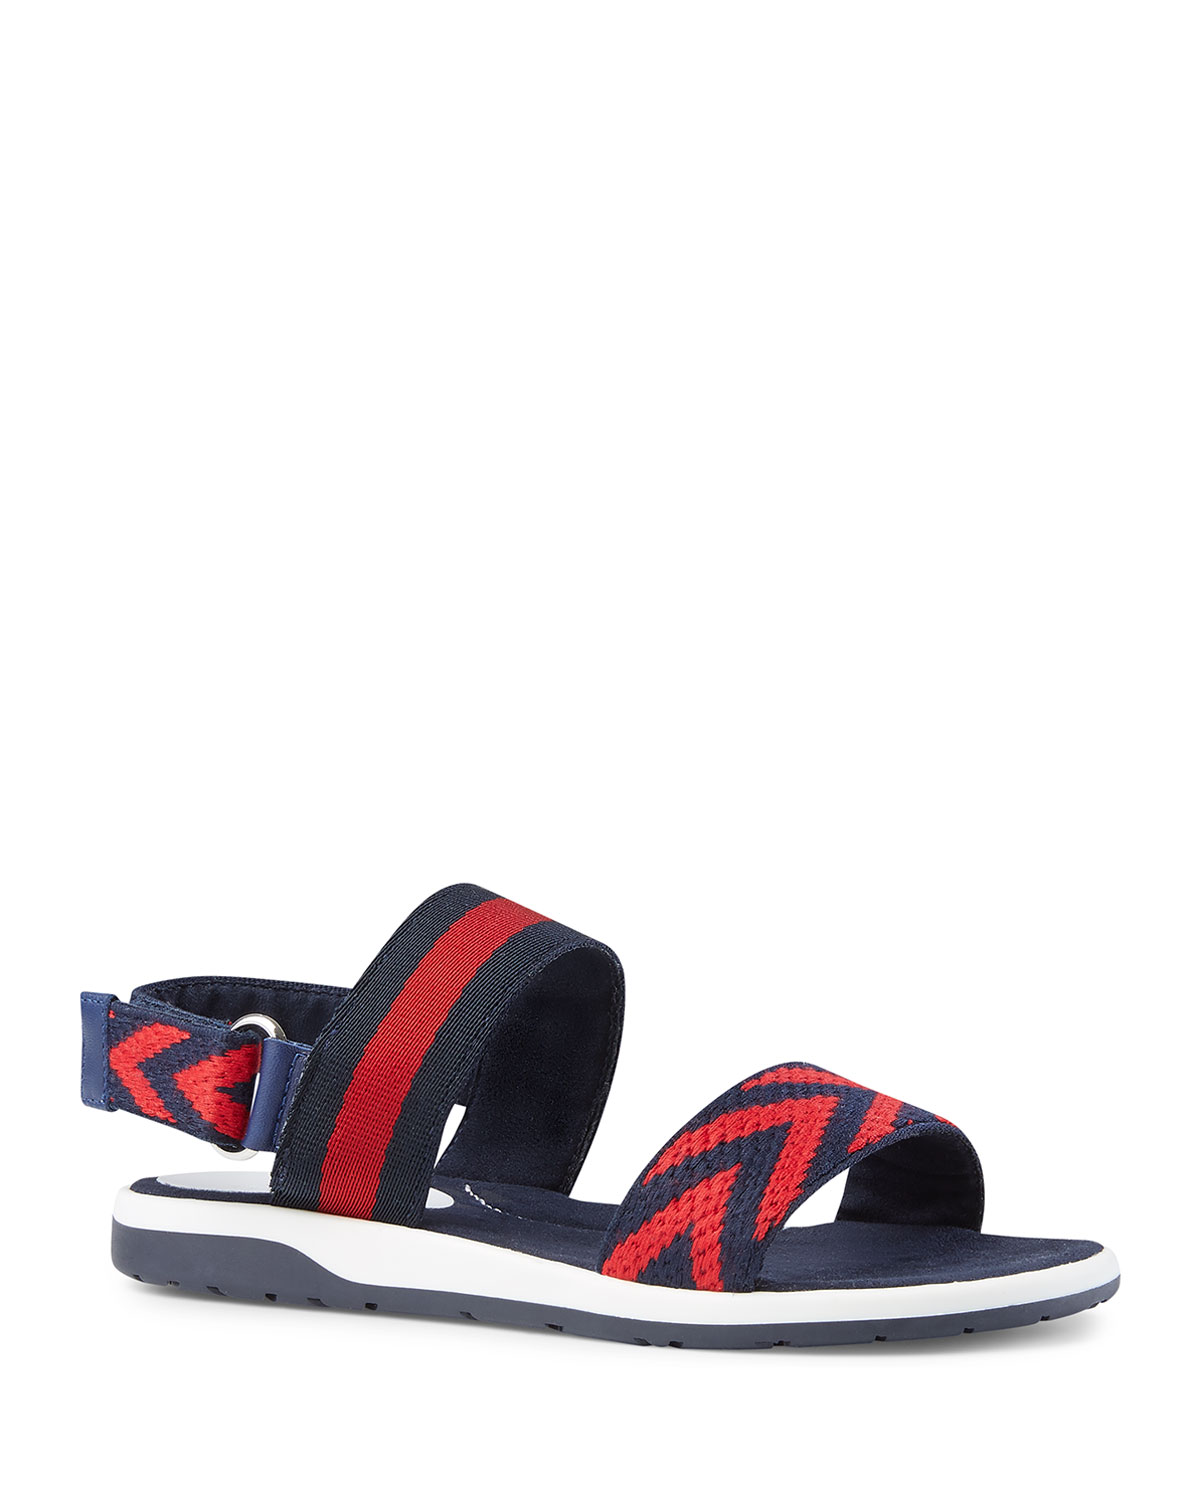 b66c1509a Gucci Chevron Leather Sandals, Blue/Red, Toddler/Kids | Neiman Marcus